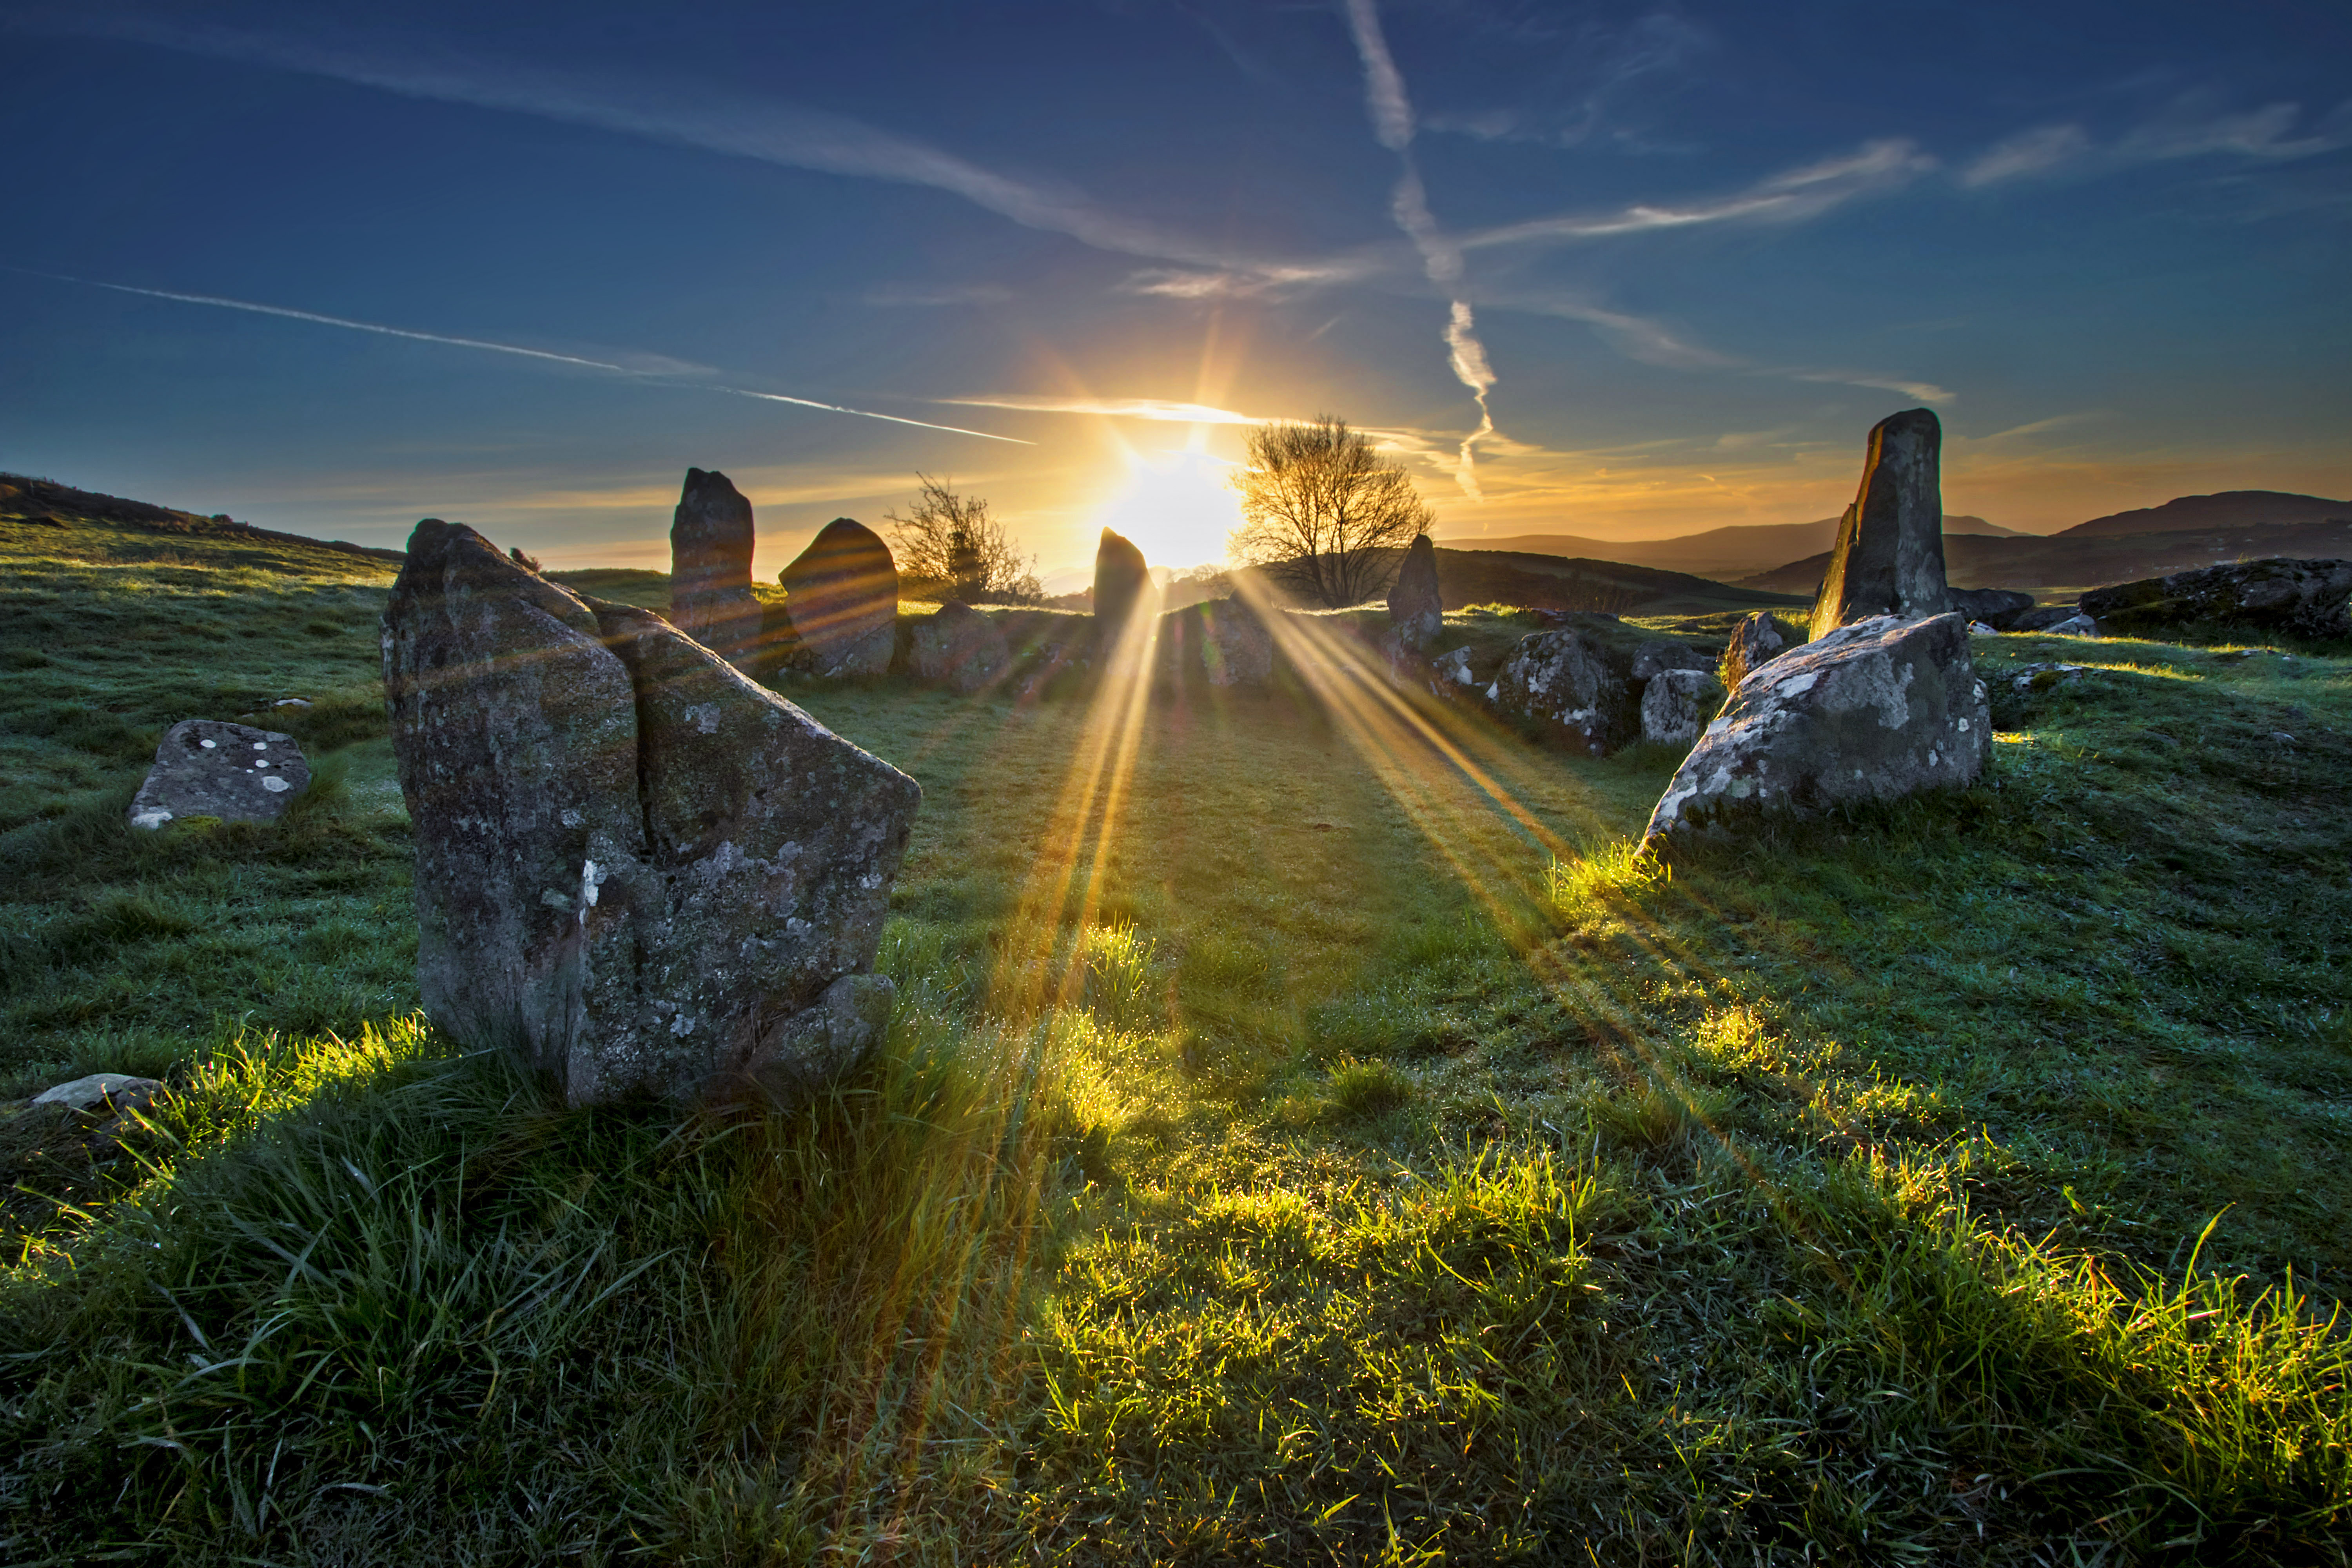 sunrise-at-ballymacdermott-cairn.jpg